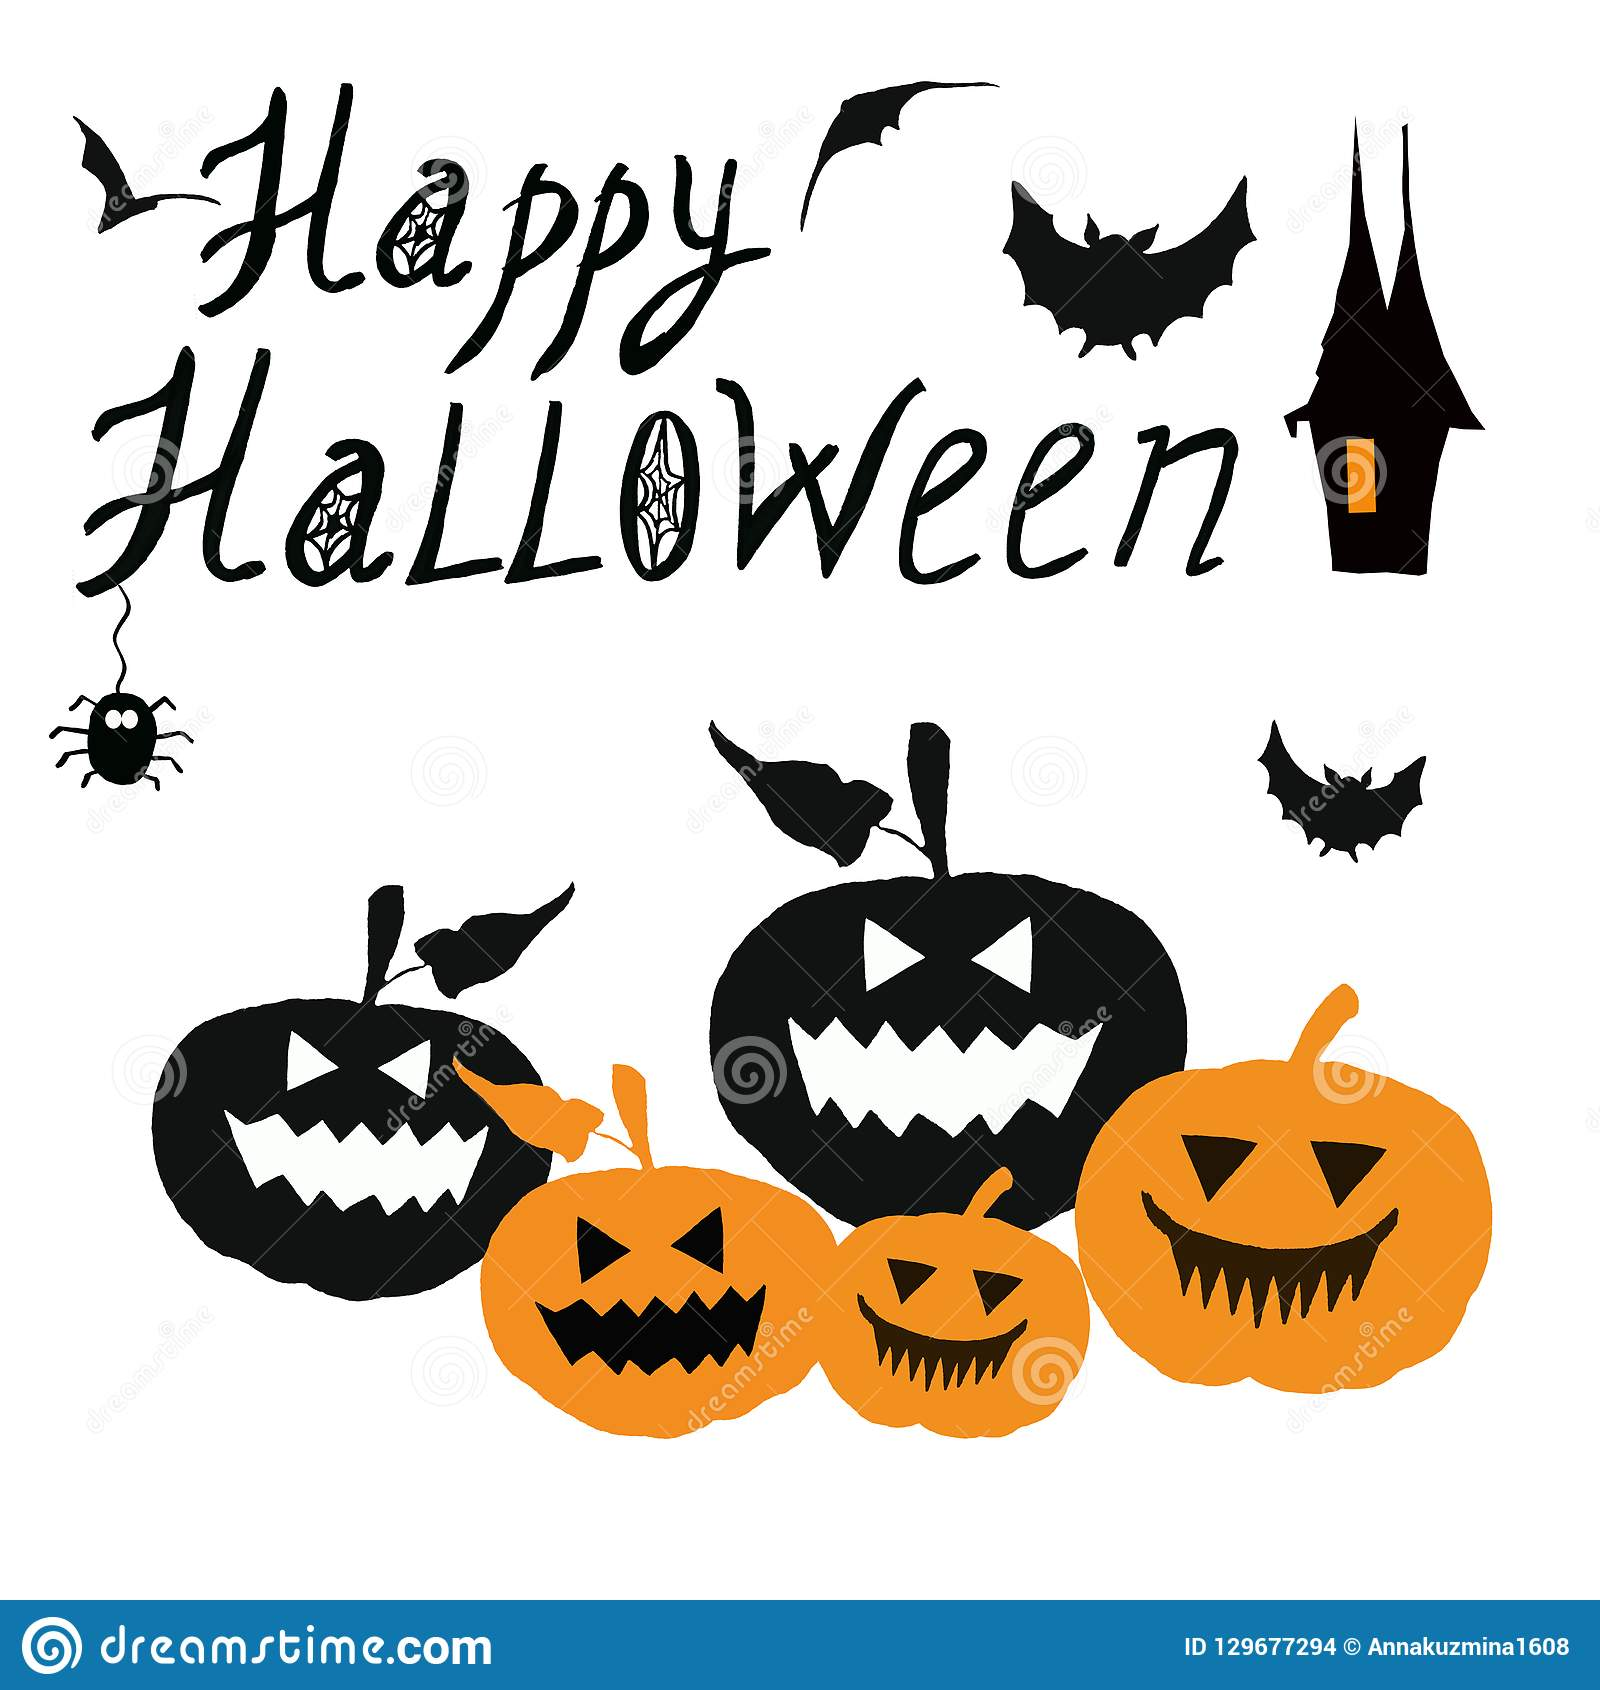 Halloween Background Happy Halloween Card With Spooky Scary Carved Pumpkins Stock Illustration Illustration Of Invitation Background 129677294